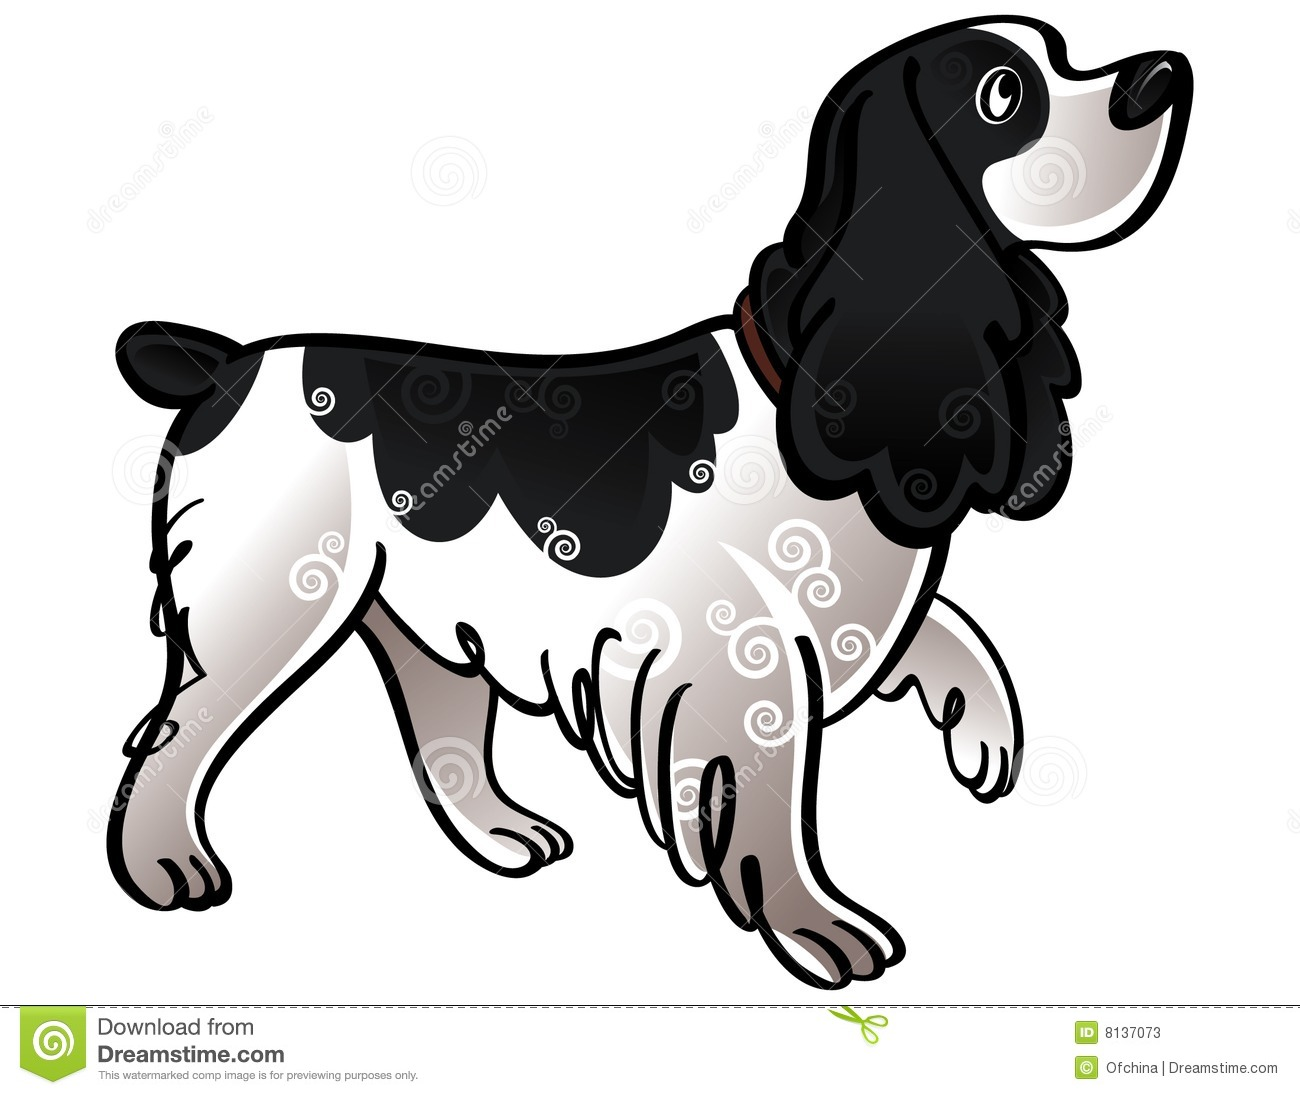 Cocker Spaniel clipart #17, Download drawings